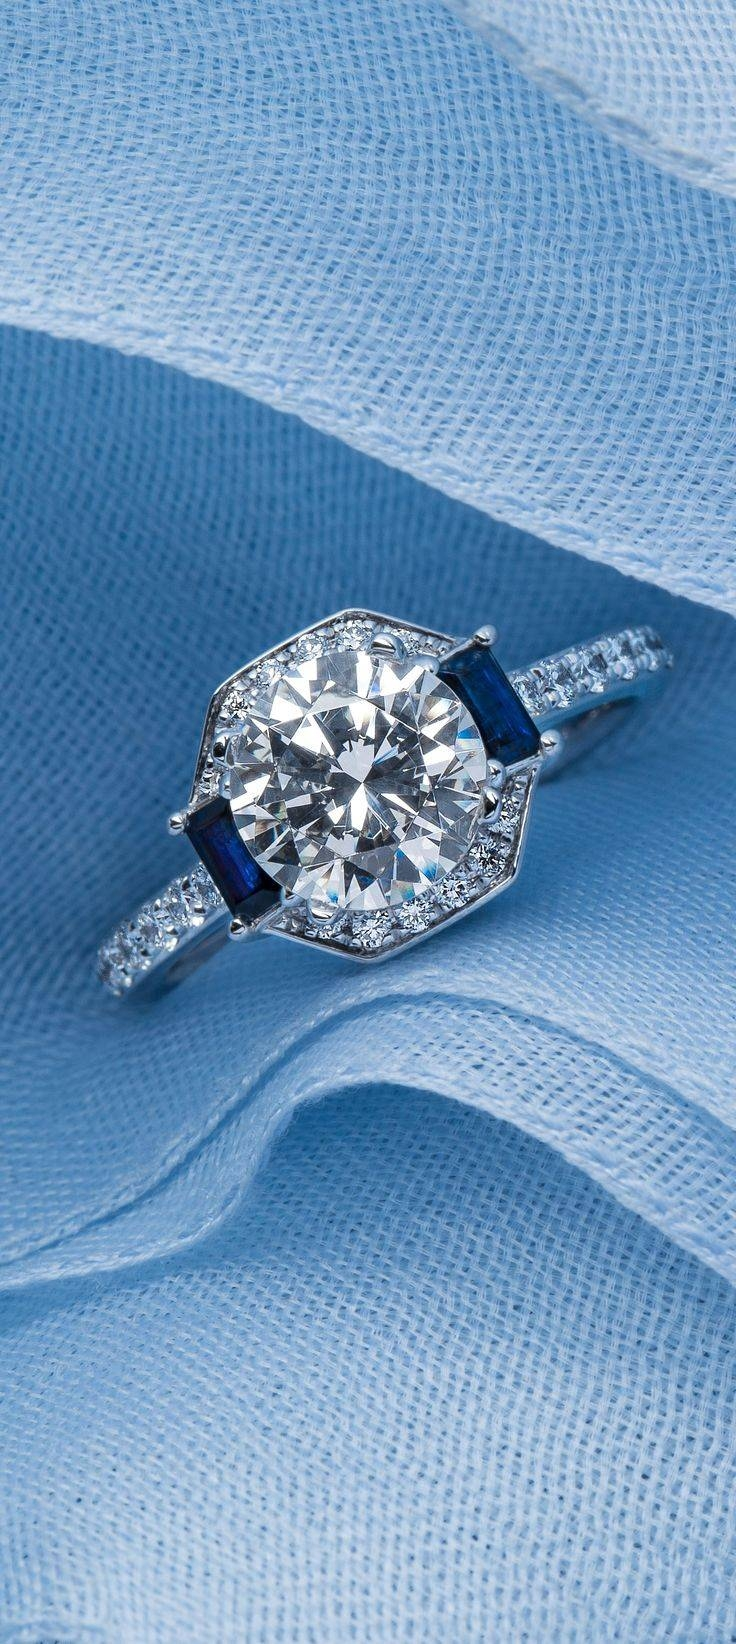 185 Best Monique Lhuillier At Blue Nile Images On Pinterest Within Latest Blue Nile Anniversary Rings (View 3 of 25)